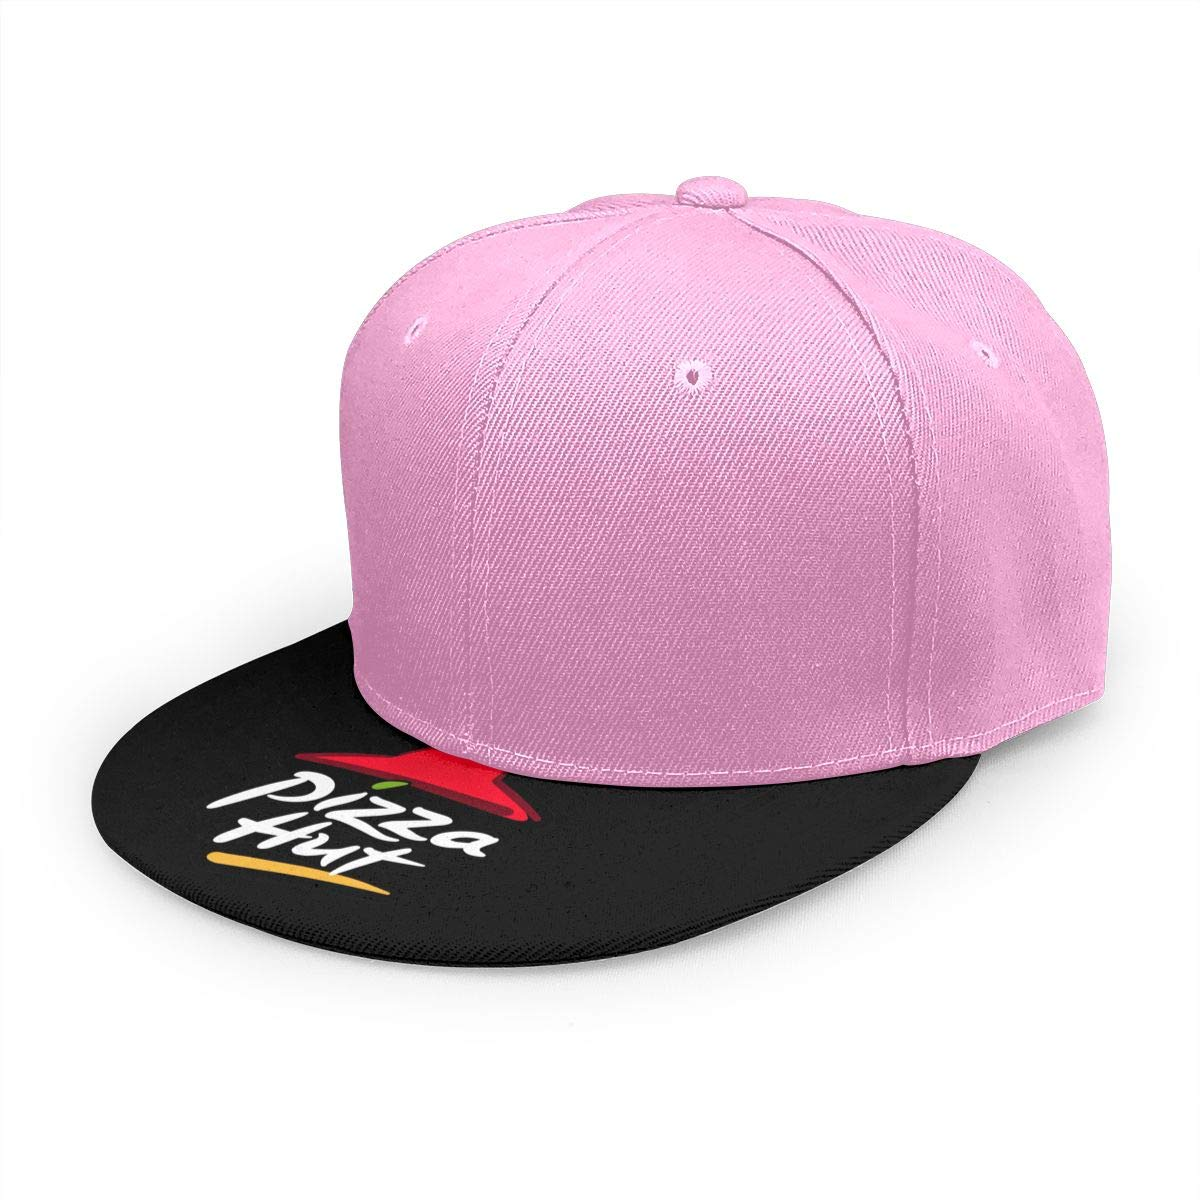 Adjustable Women Men Pizza-Hut-Logo Print Baseball Cap Flat Brim Cap Hats Hip Hop Snapback Sun Hat Boys Girls Pink by Apolonia